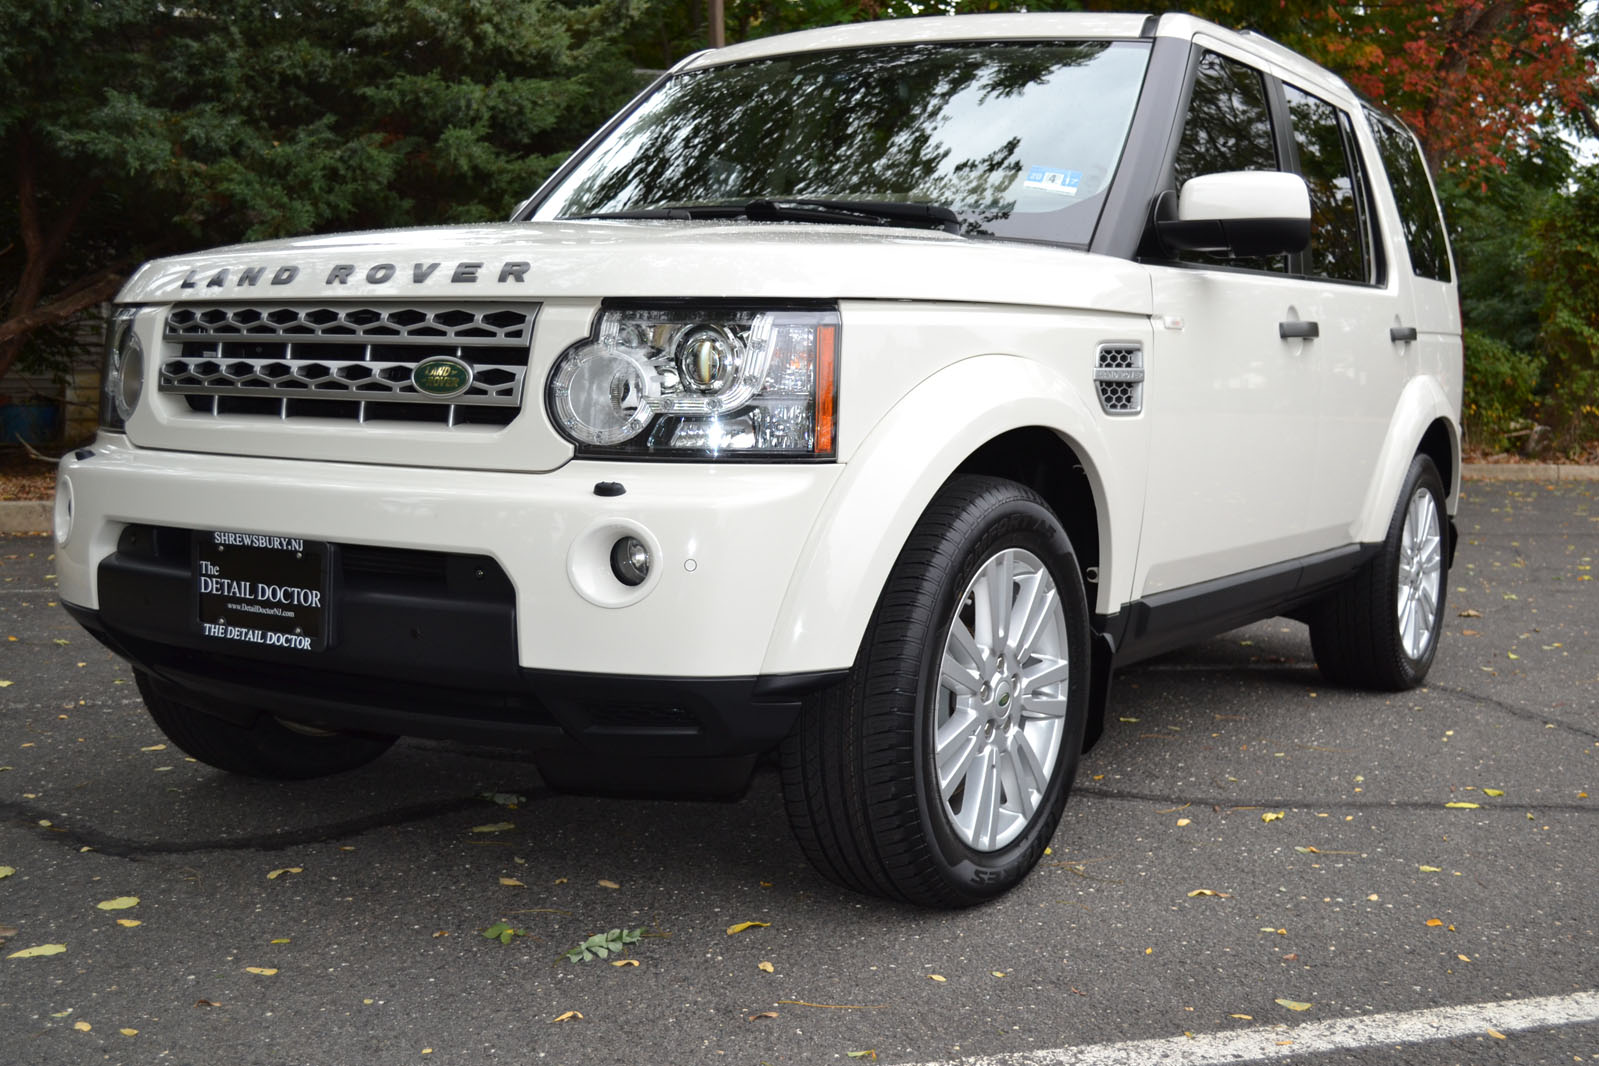 rover east title land lot sale auto certificate atlanta ga on view black of online auctions lu copart hse right carfinder en landrover for in